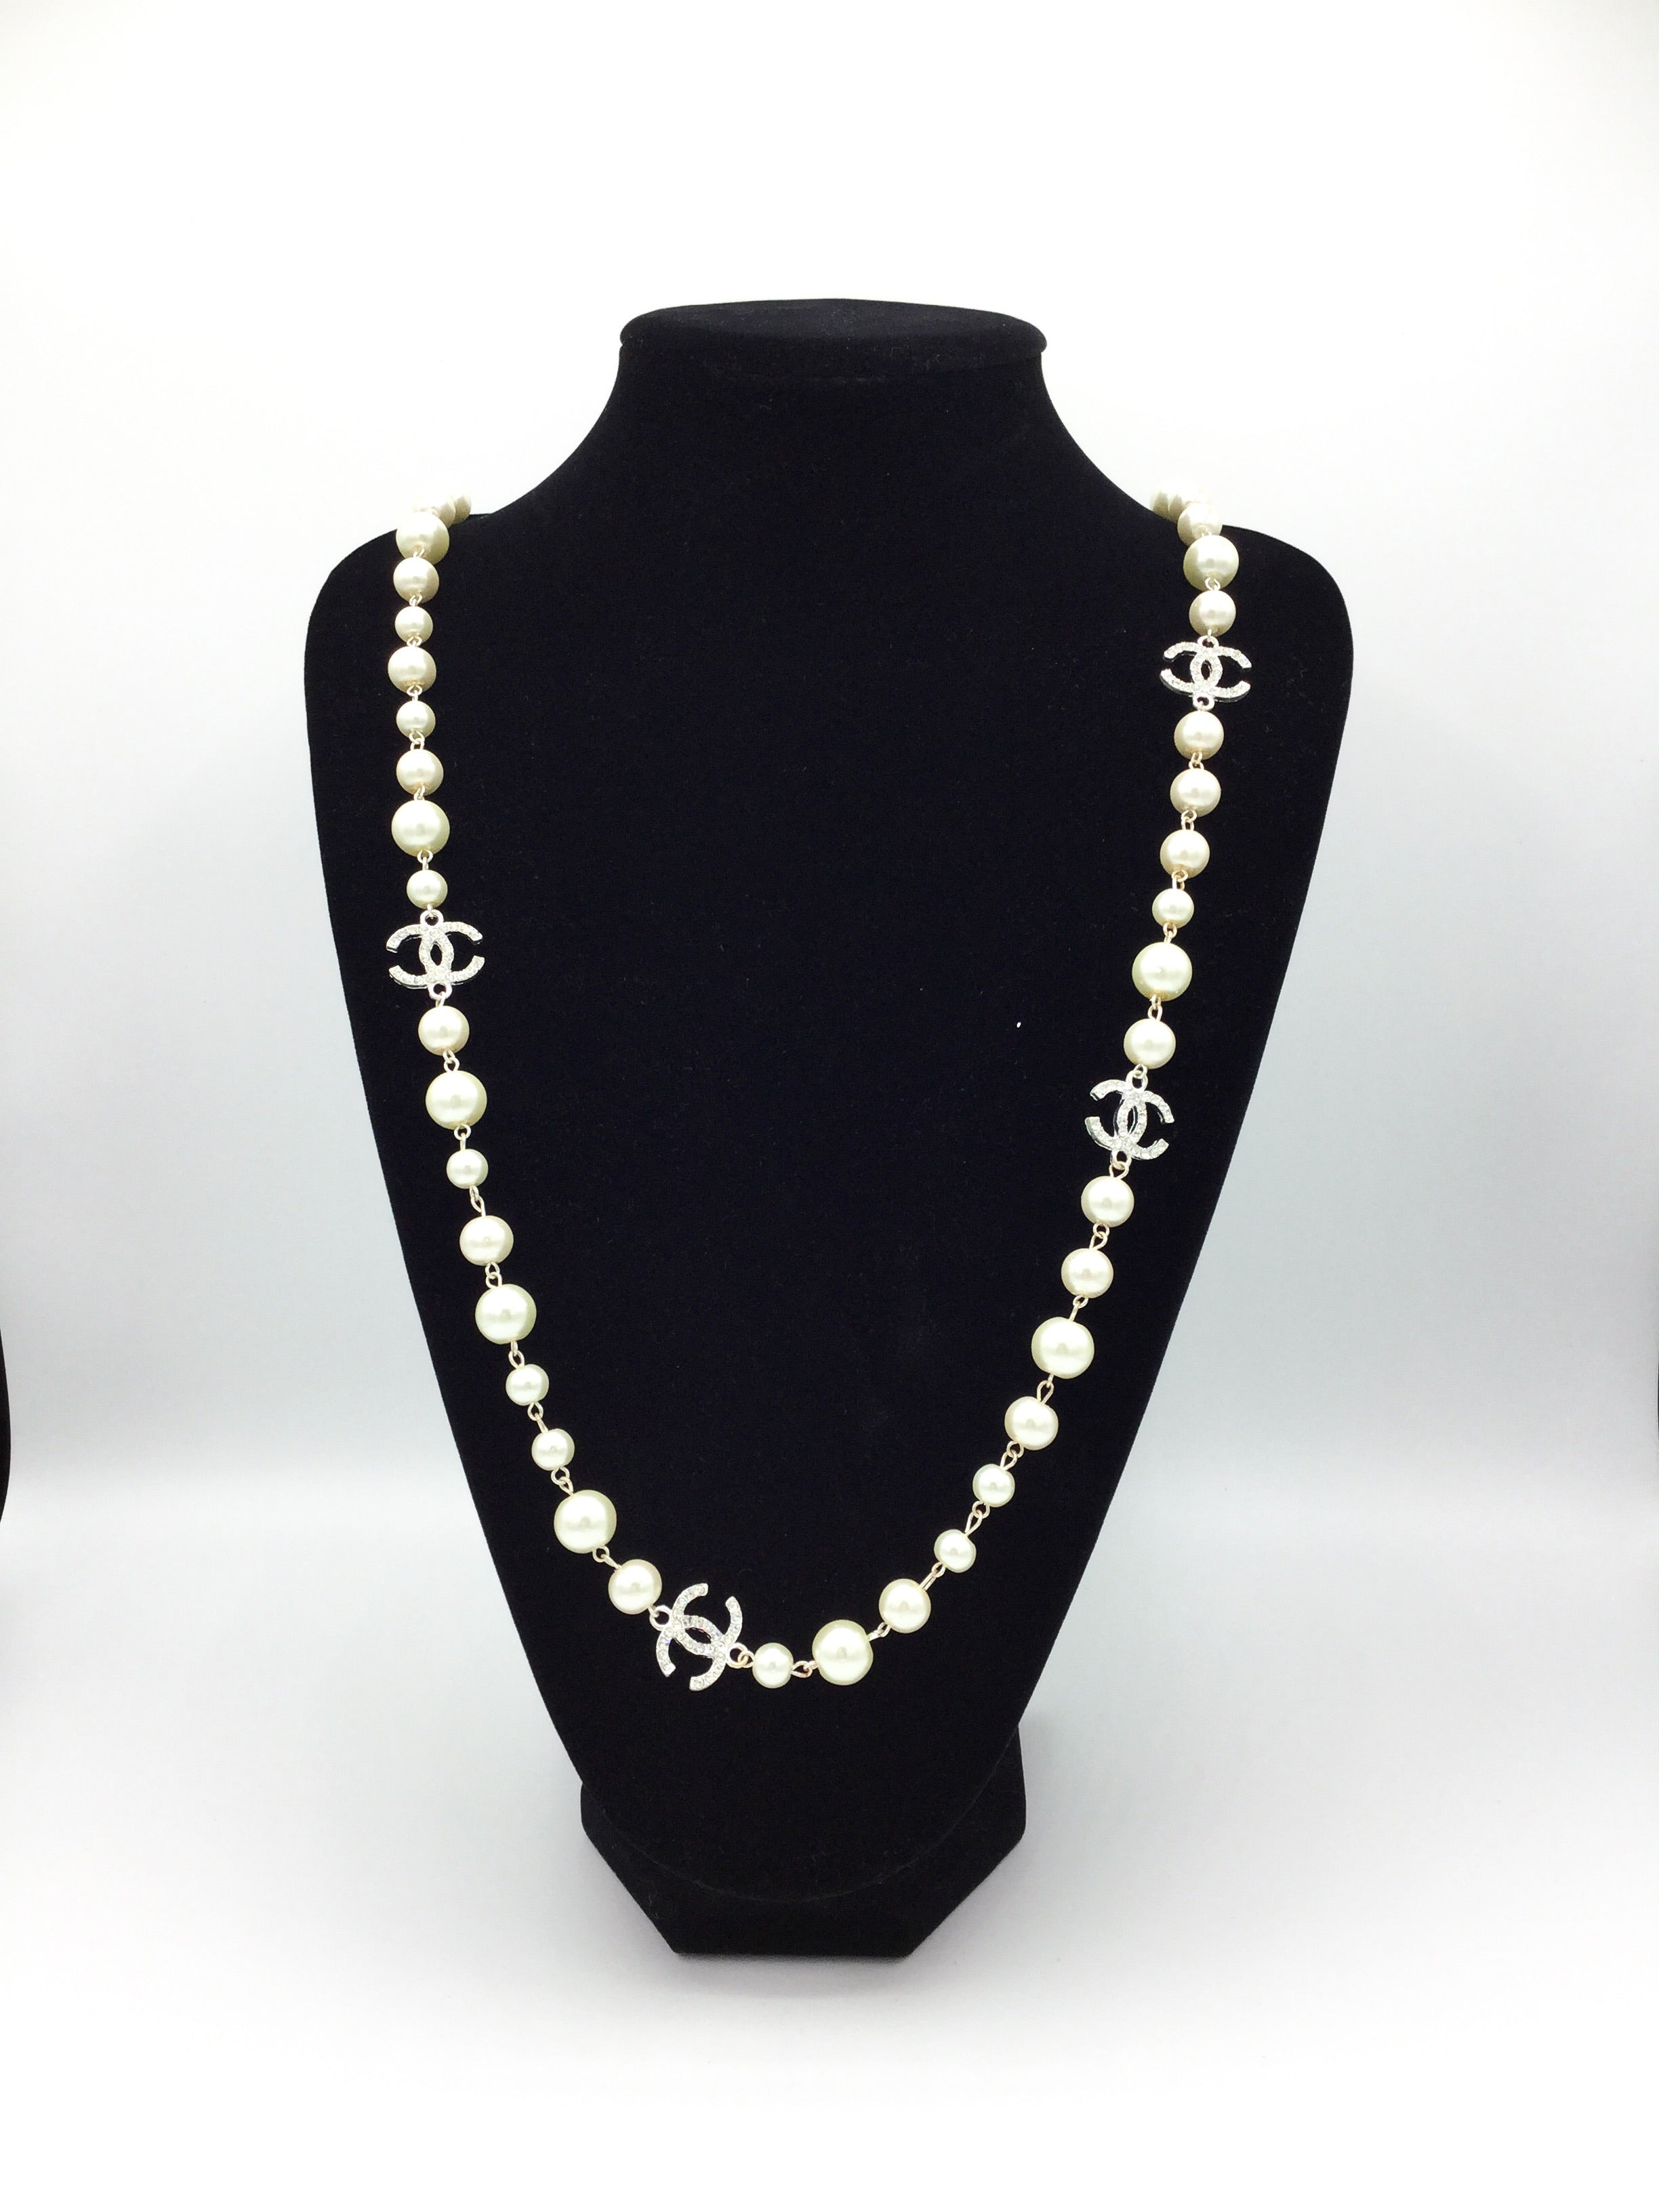 Faux-Pearl Designer Charm Rhinestone Necklace